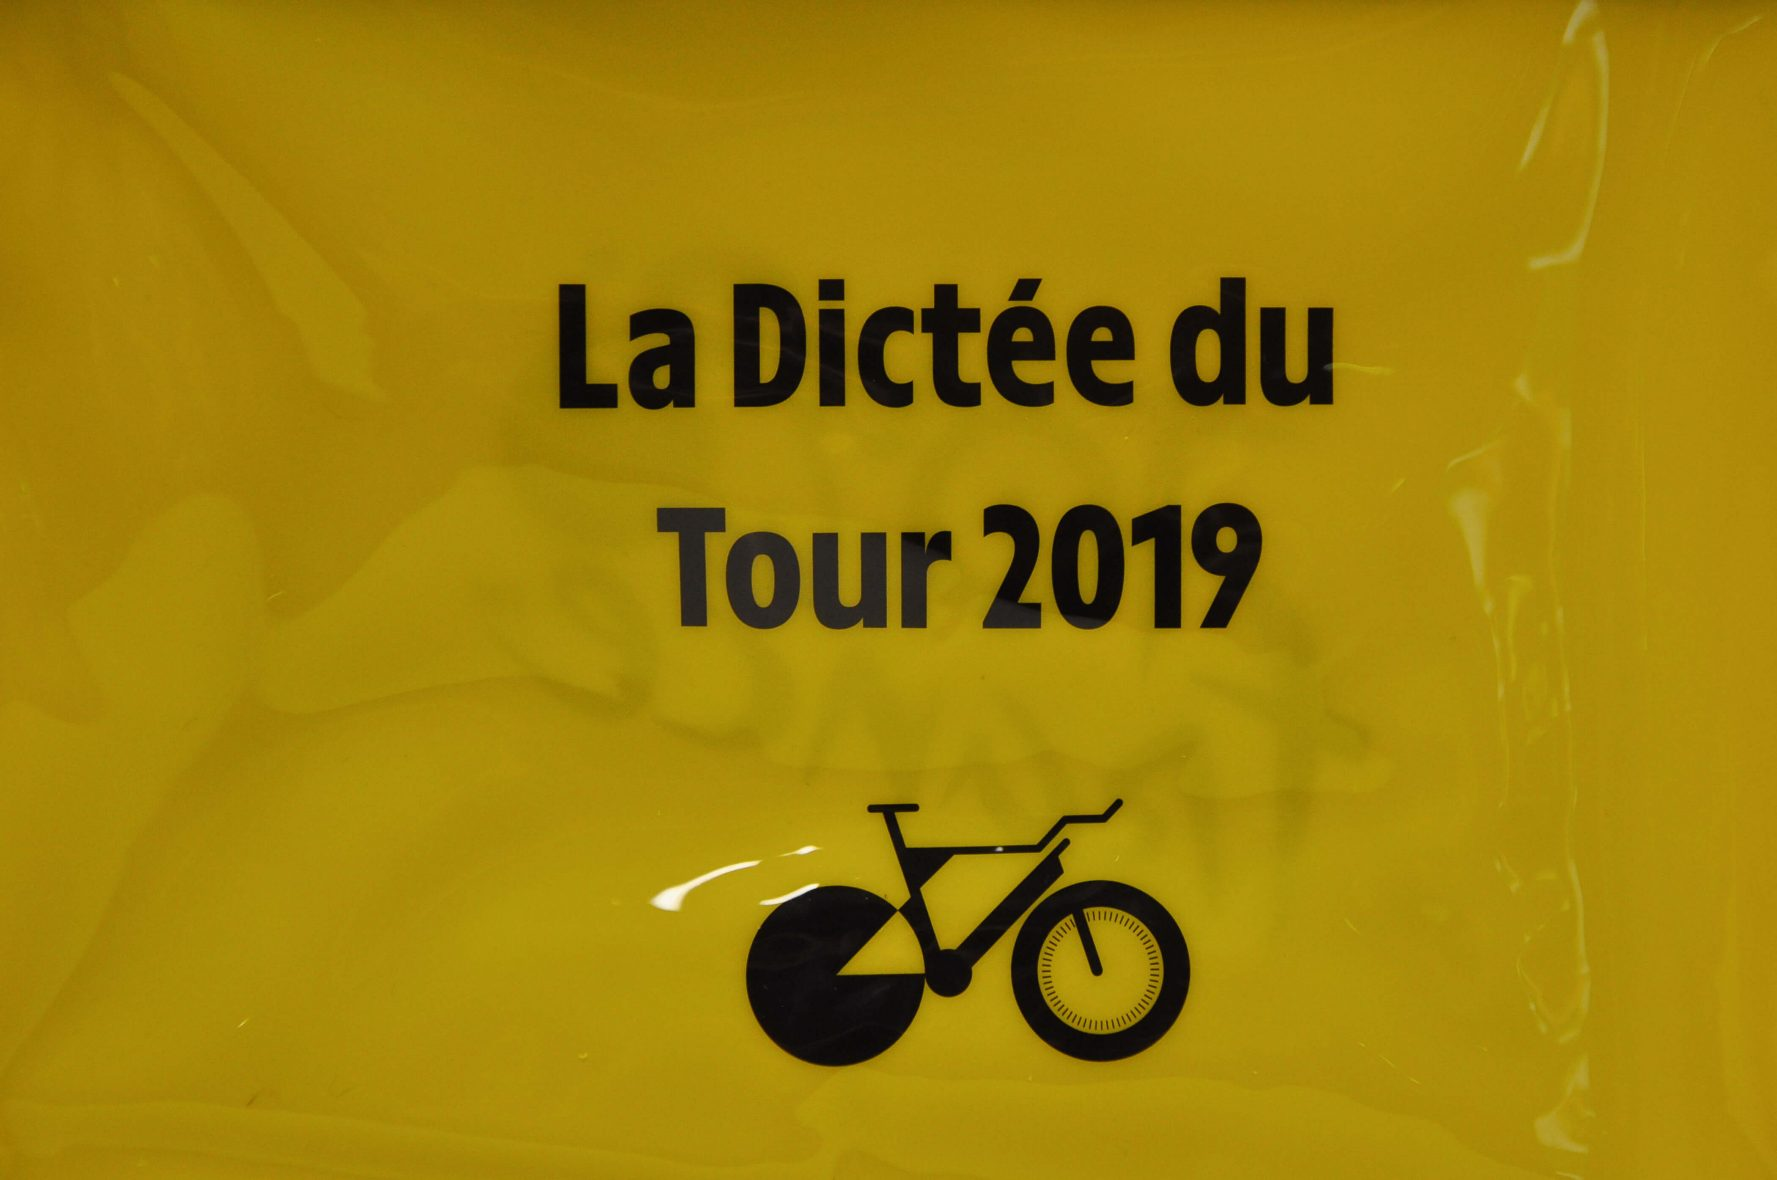 Dictée du tour de France